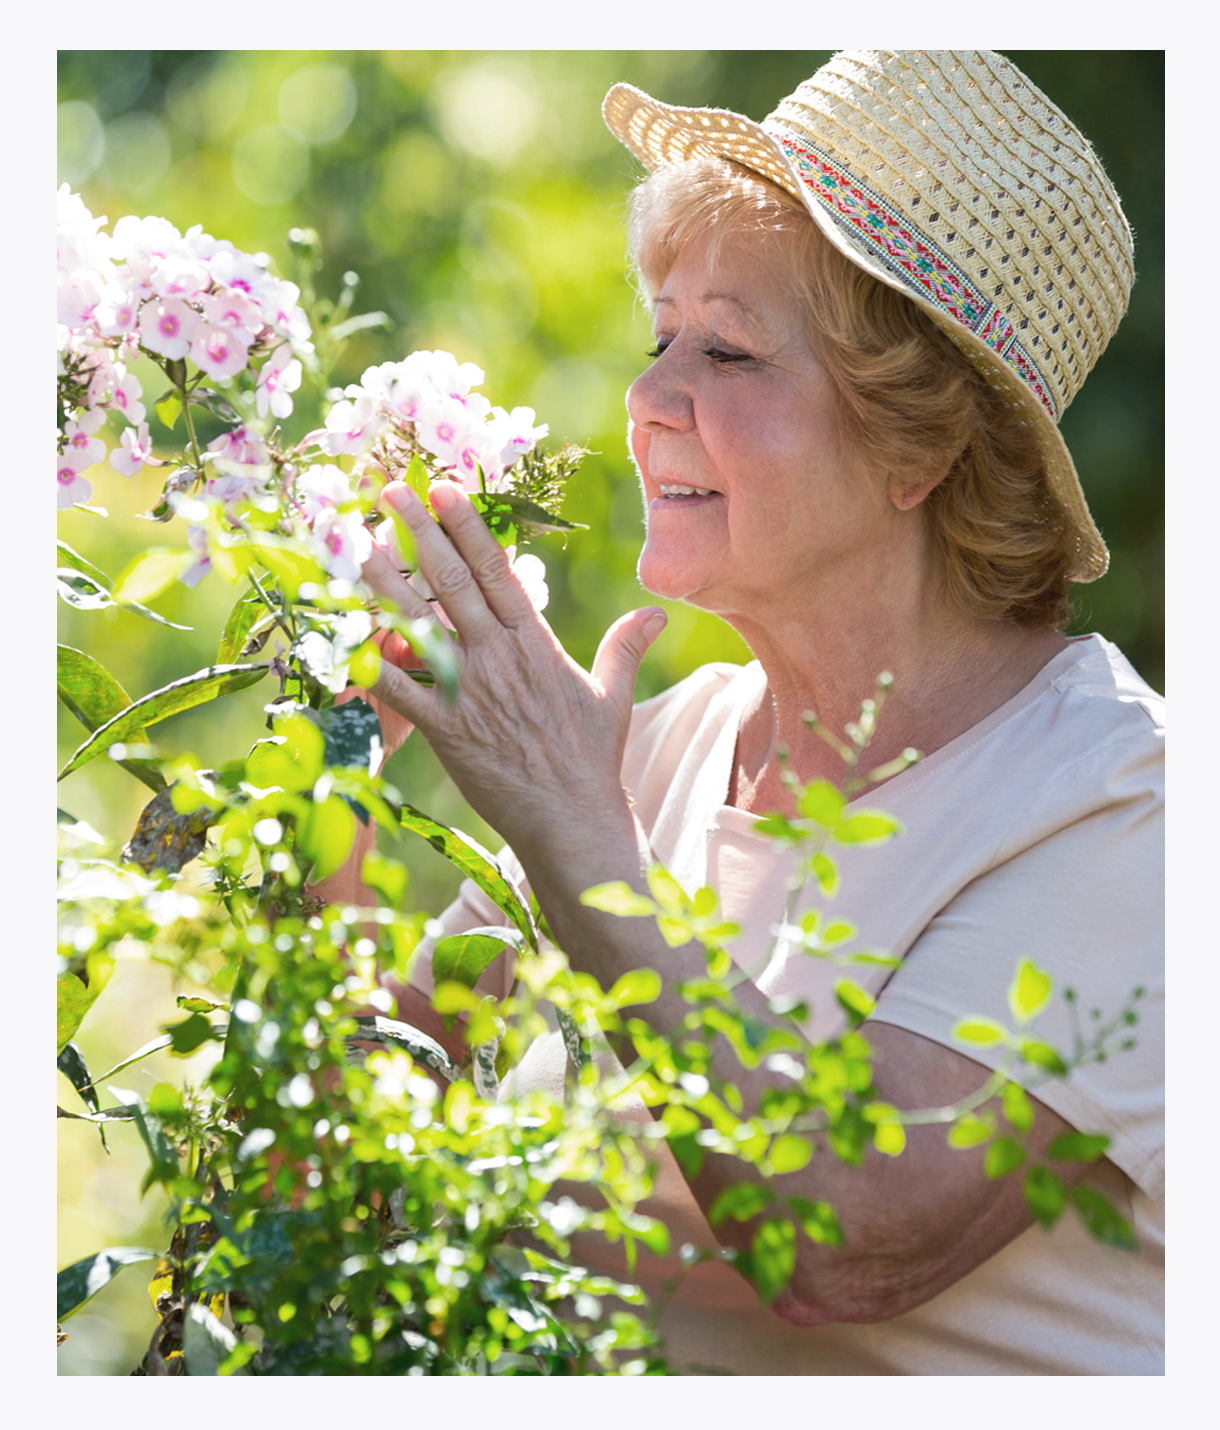 Senior woman smelling flowers, pain management, symptom management, quality of life